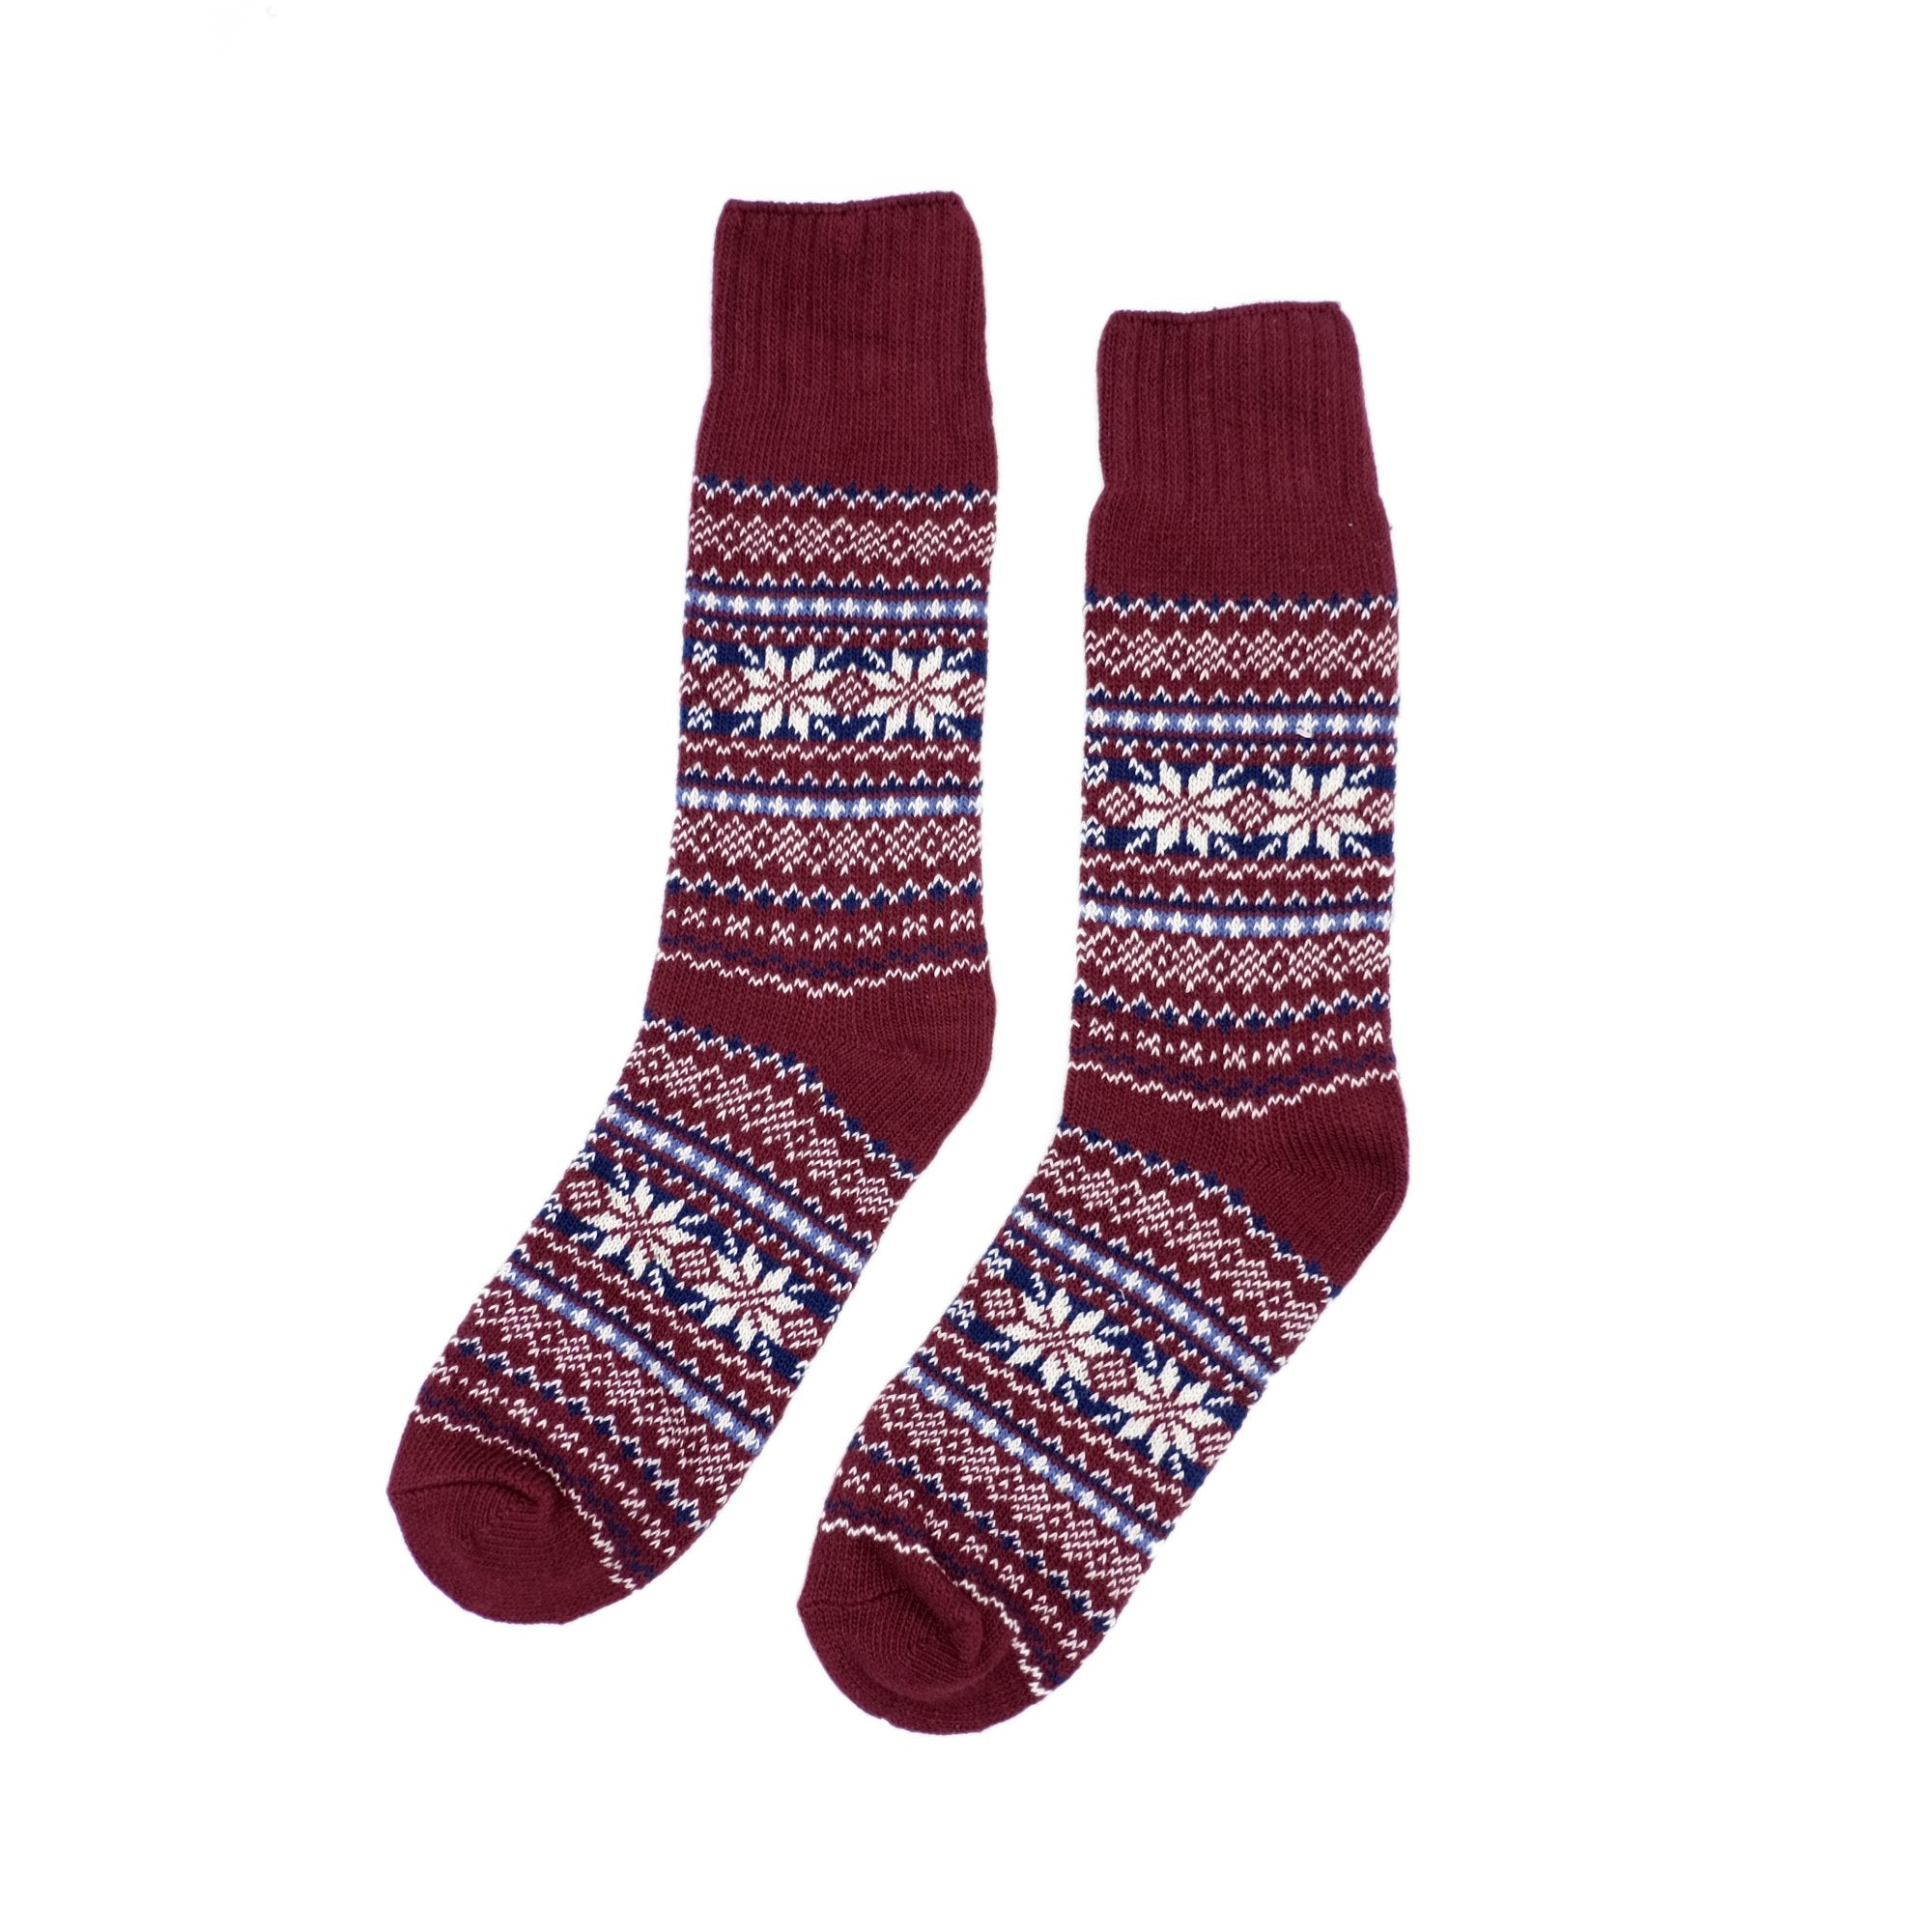 Nordic Socks - Red